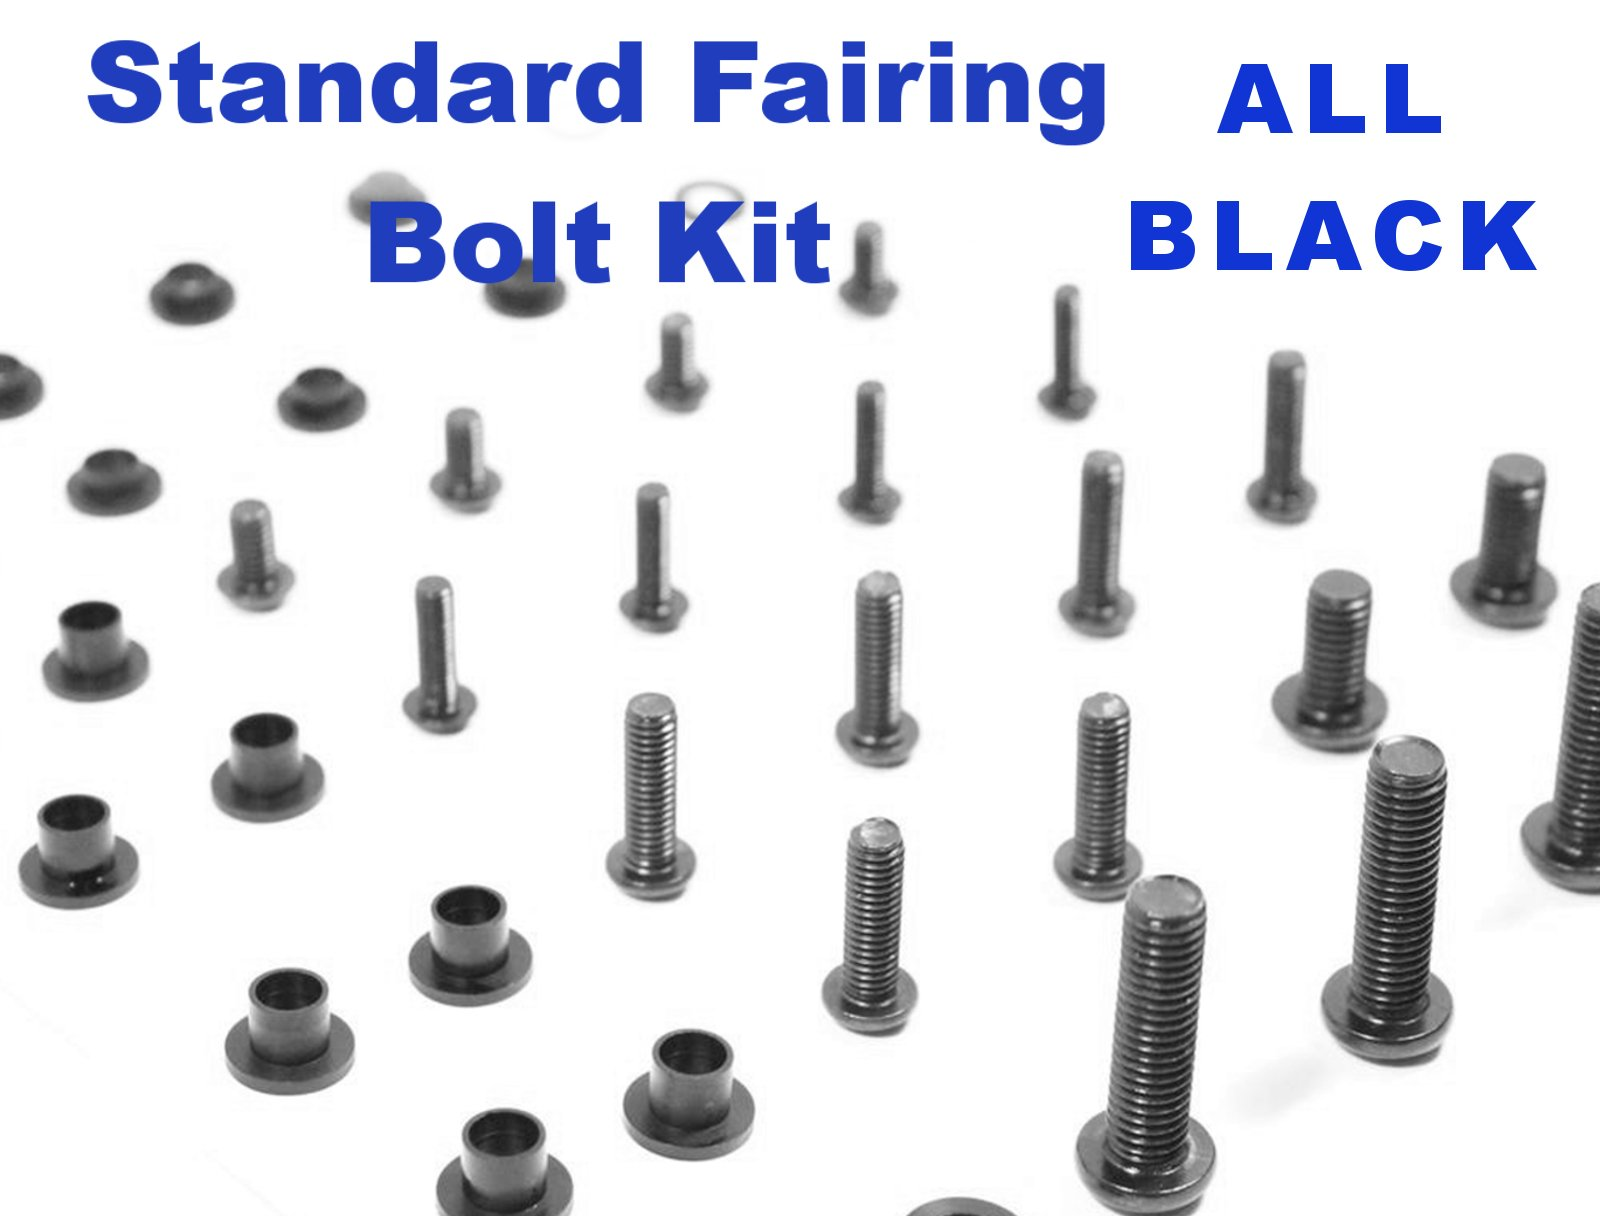 Black Standard Motorcycle Fairing Bolt Kit Suzuki GSX-R 600 / 750 2011 - 2015 Body Screws, Fasteners, and Hardware